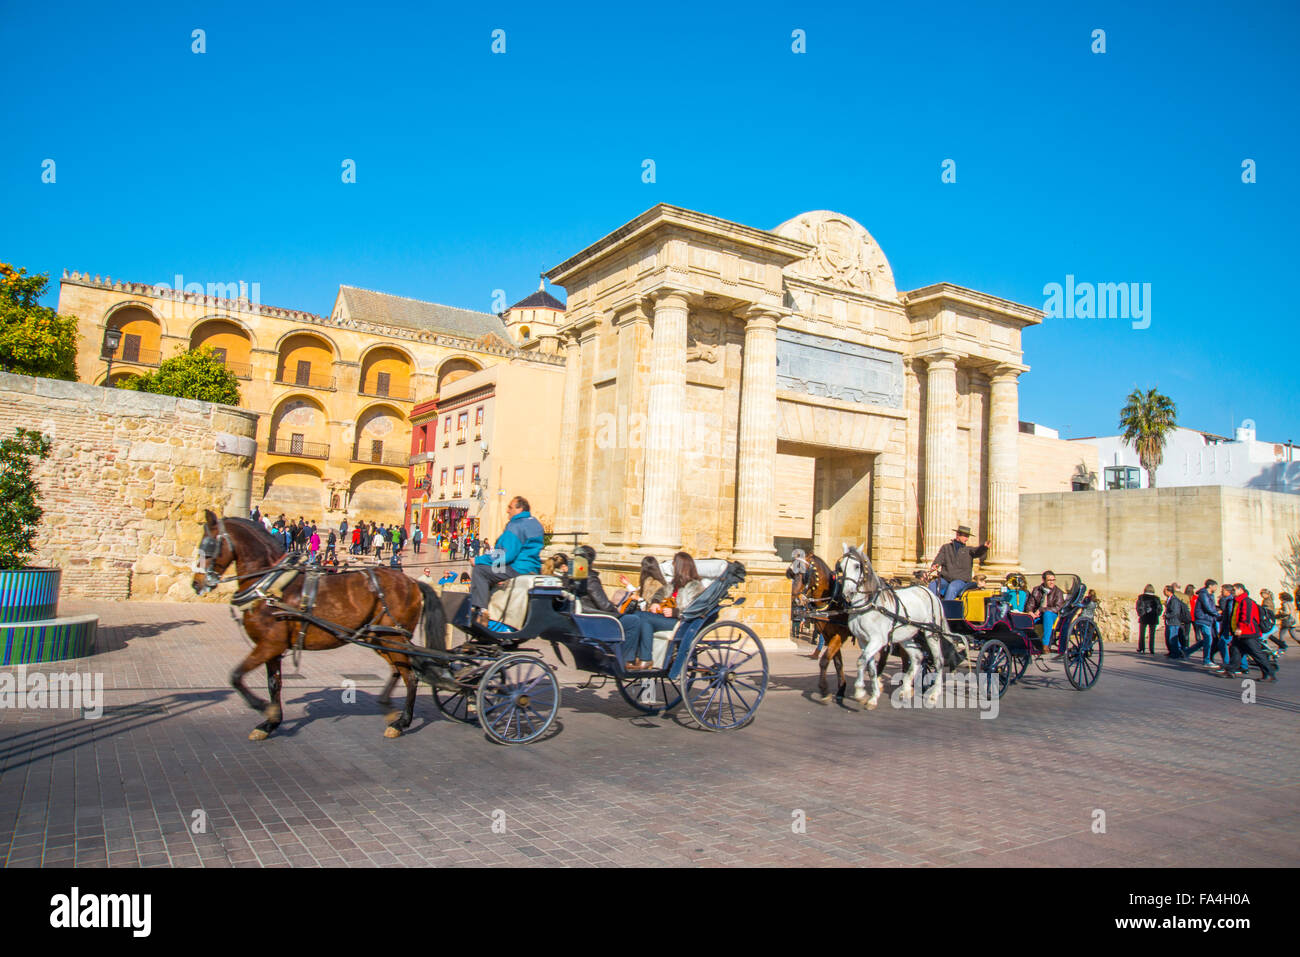 Horse-drawn carriages by the Bridge Gate. Cordoba, Spain. - Stock Image